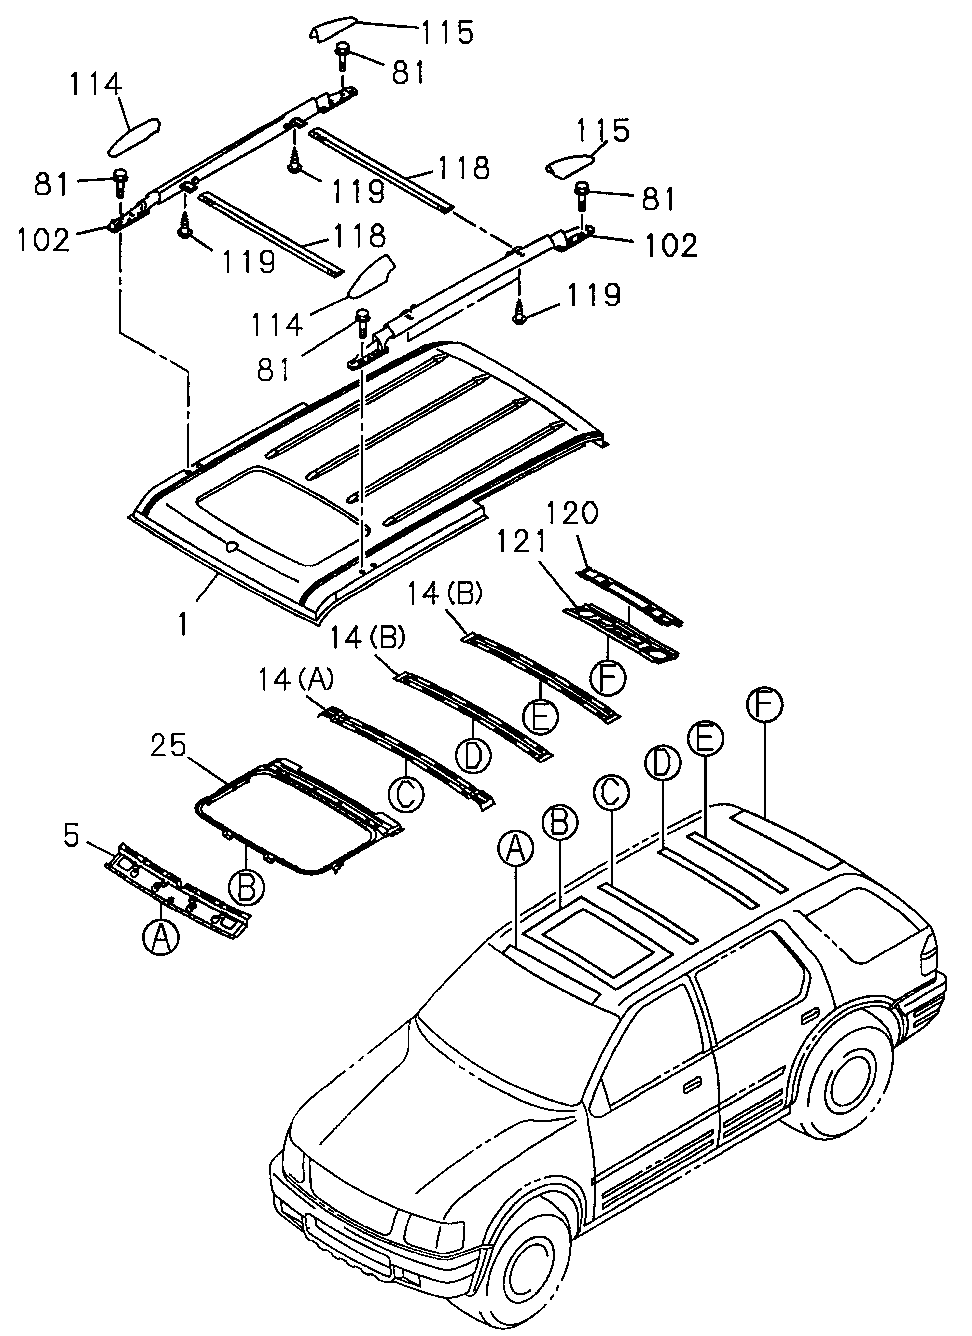 8-97124-193-4 - SUPPORT, ROOF